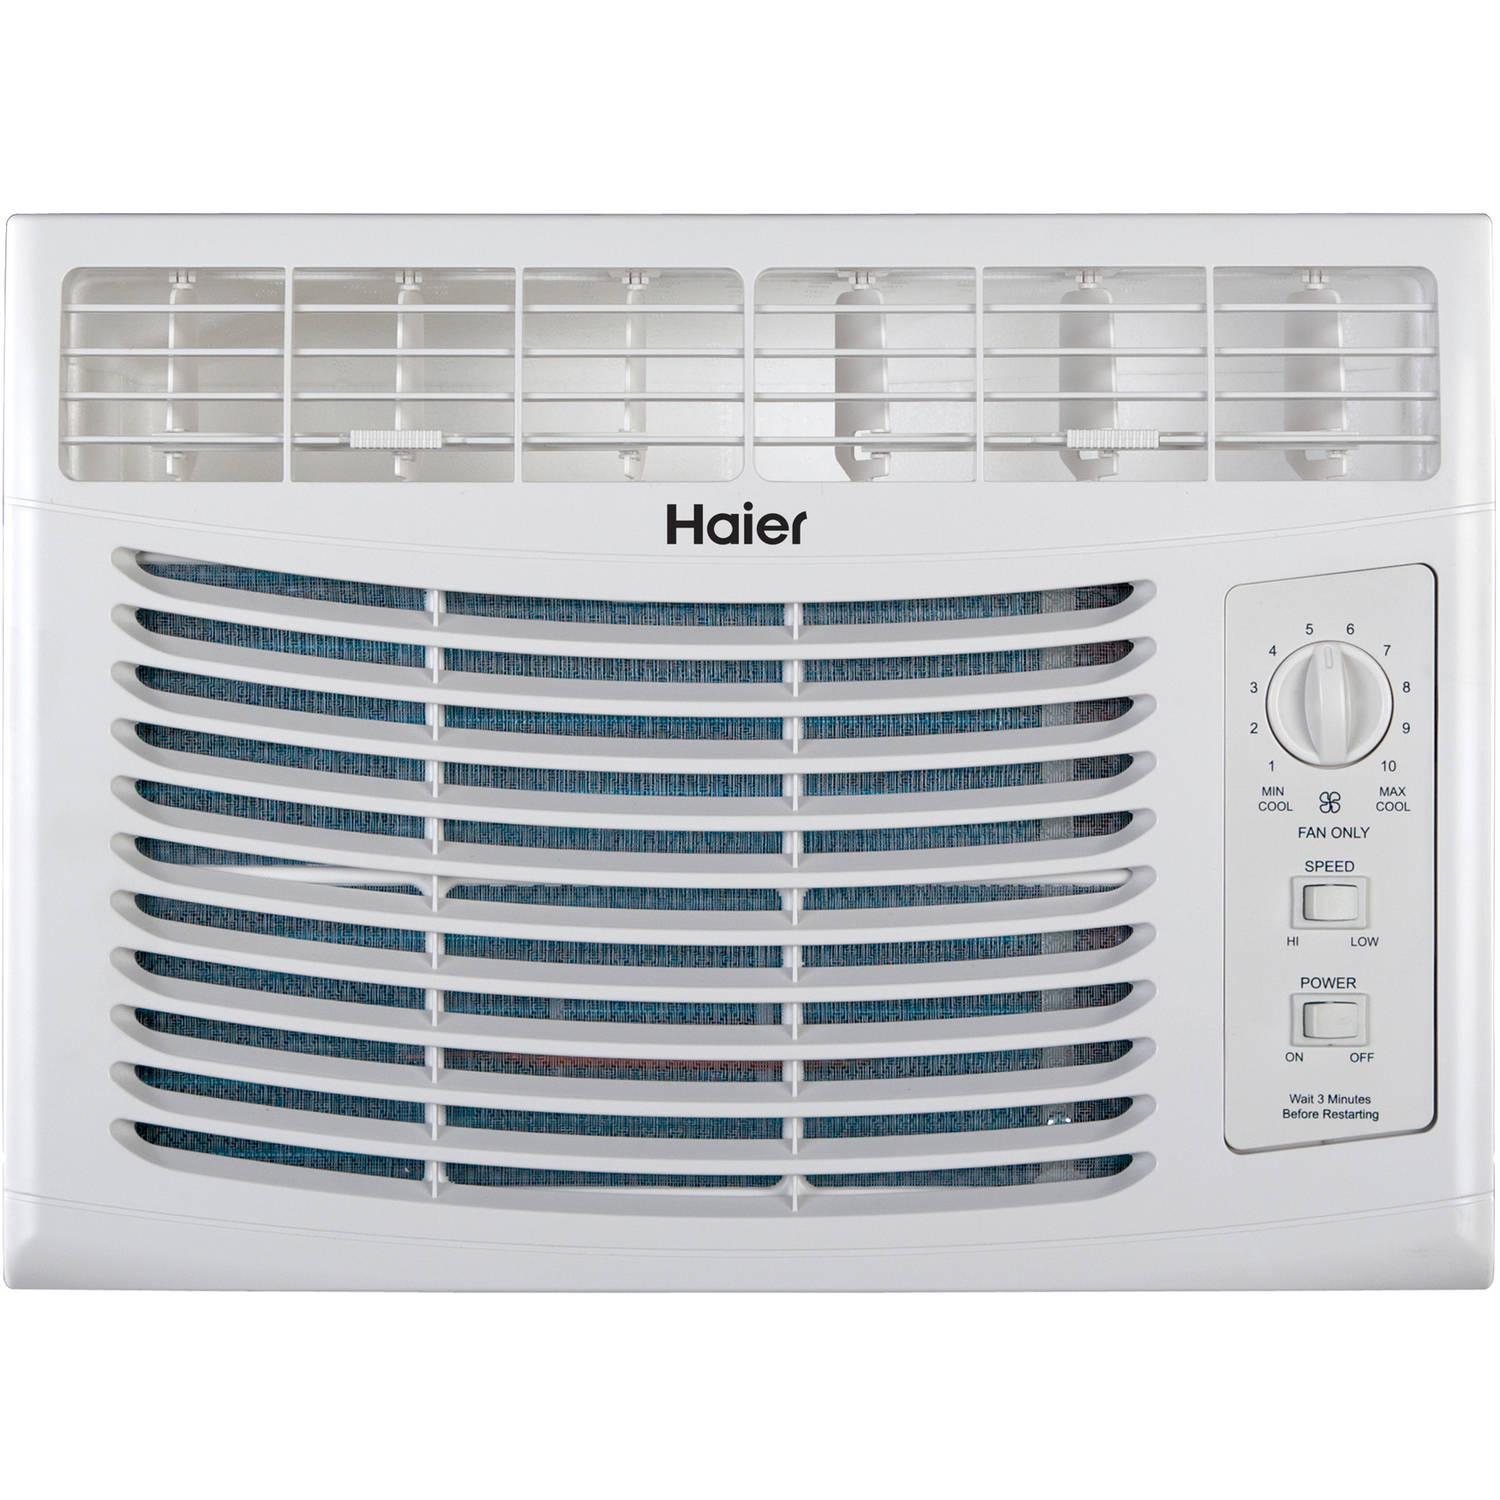 Haier 5000 Btu Window Air Conditioner 115v Hwf05xcr L Coolant Drain Location Together With Conditioning Wiring Diagrams